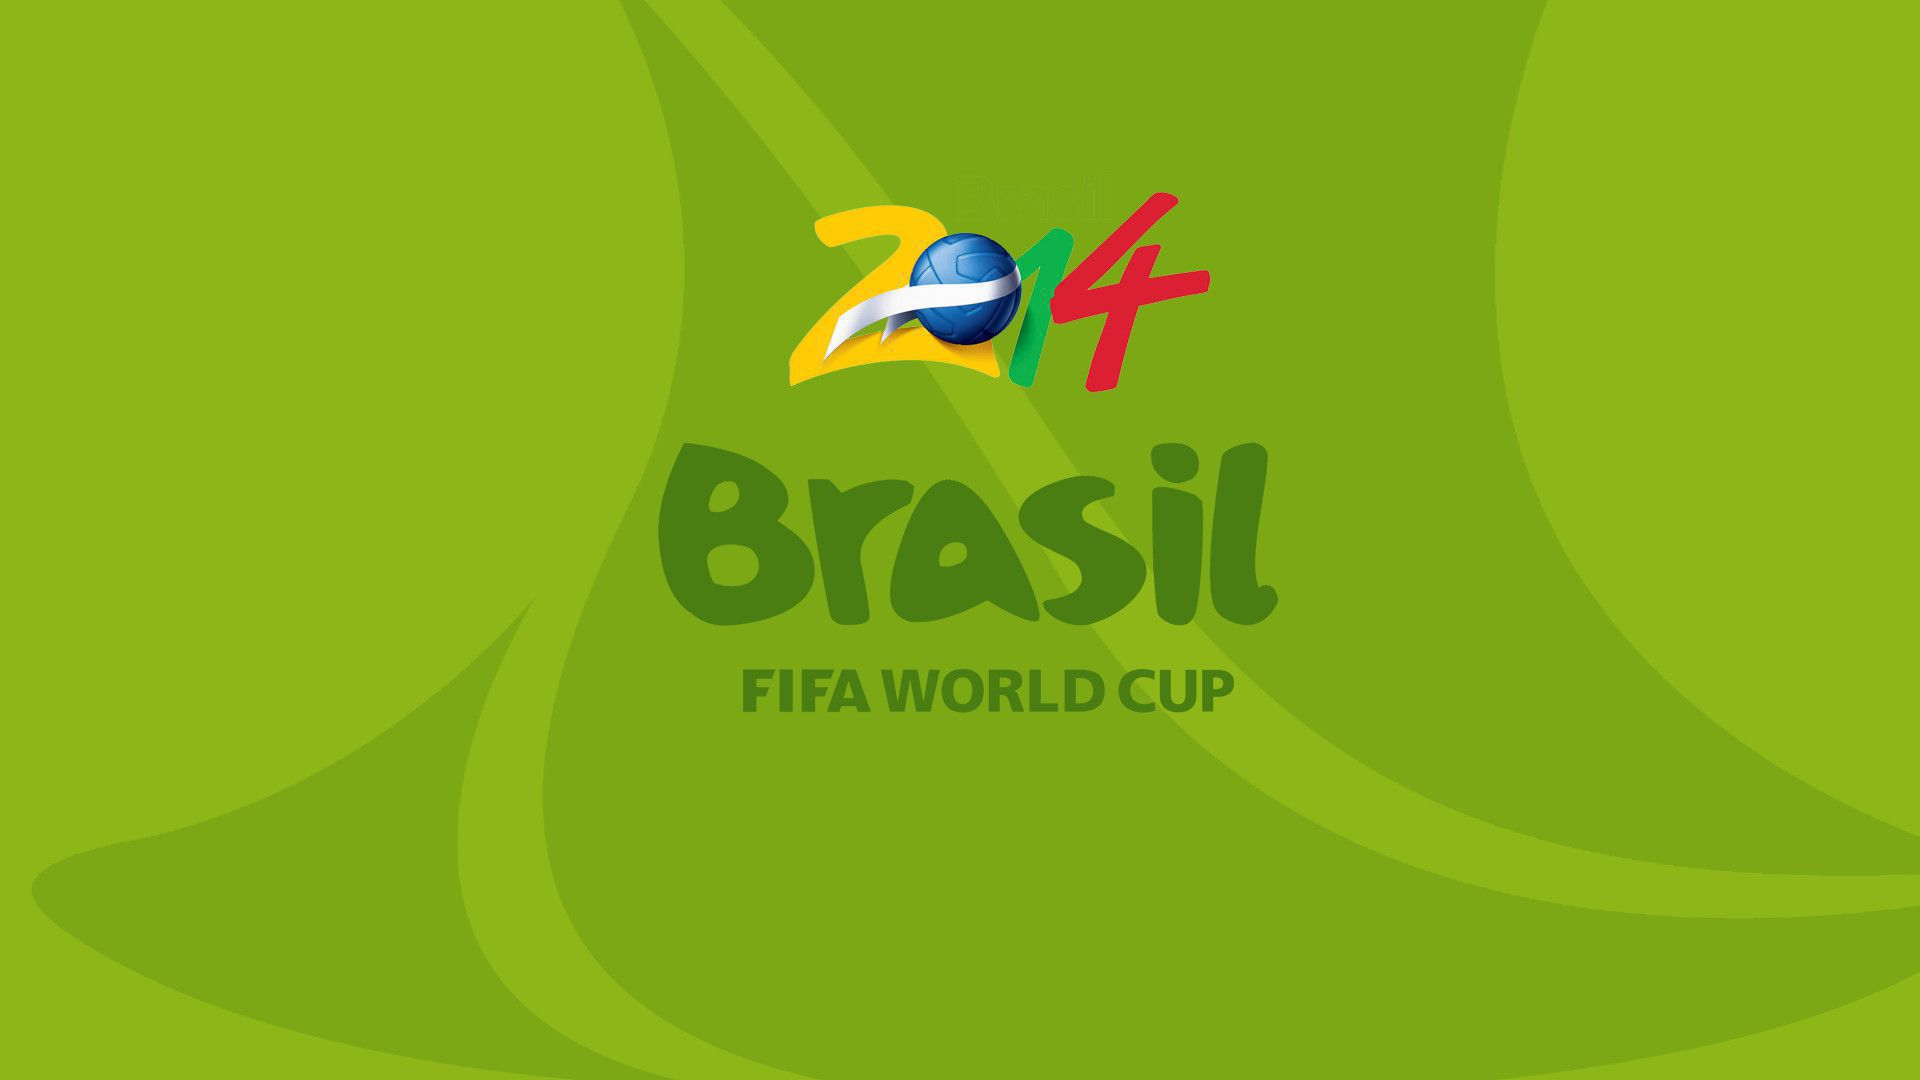 Brazil World Cup 2014 Tumblr